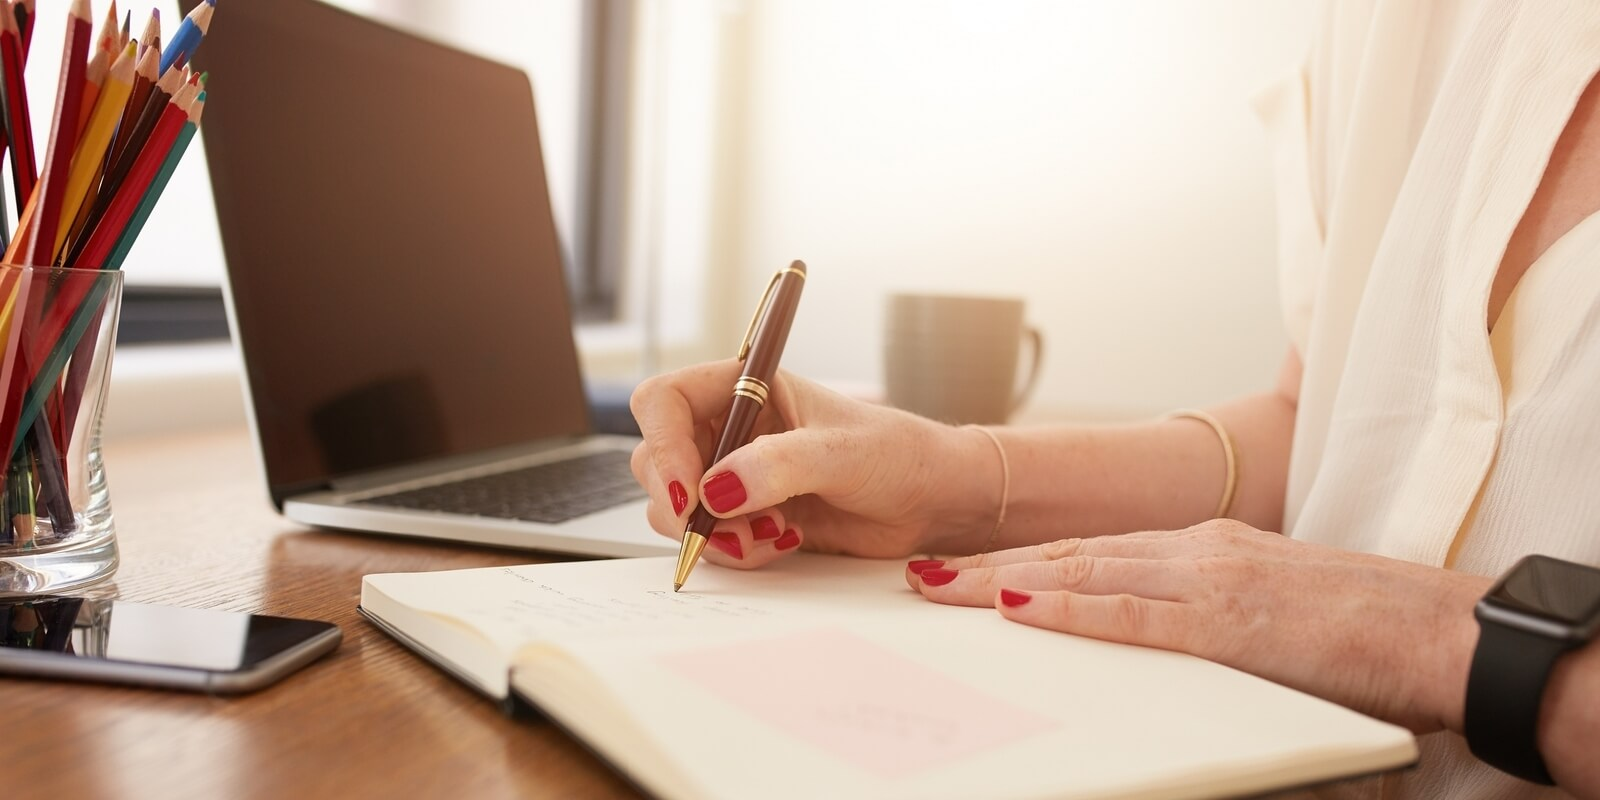 11-Great-Part-Time-Work-from-Home-Jobs-for-Moms.jpg